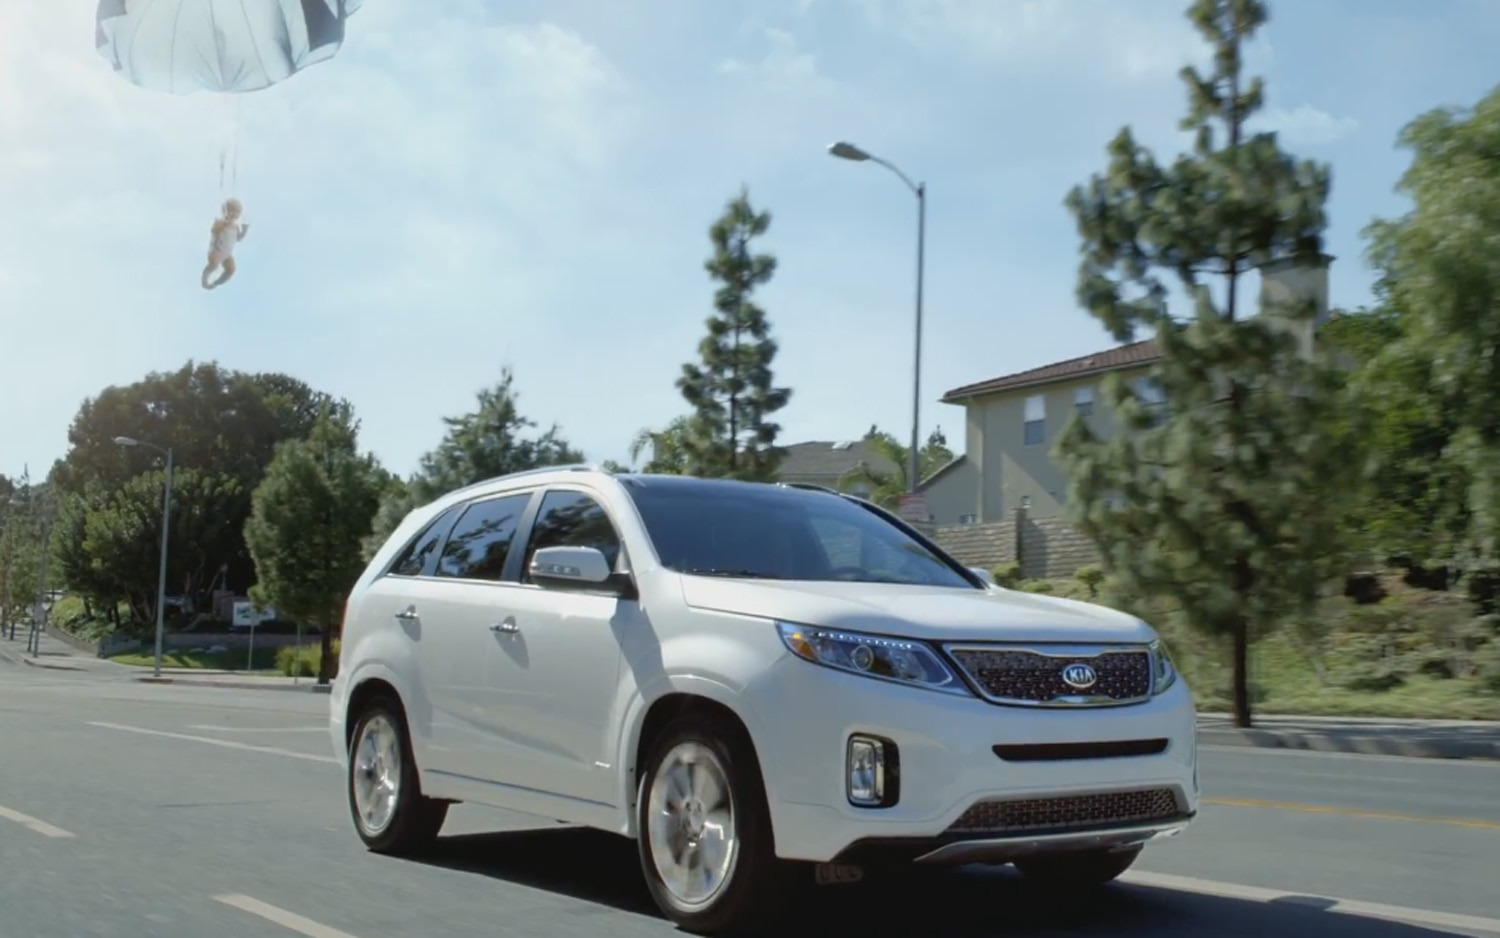 2014 Kia Sorento In Super Bowl Ad